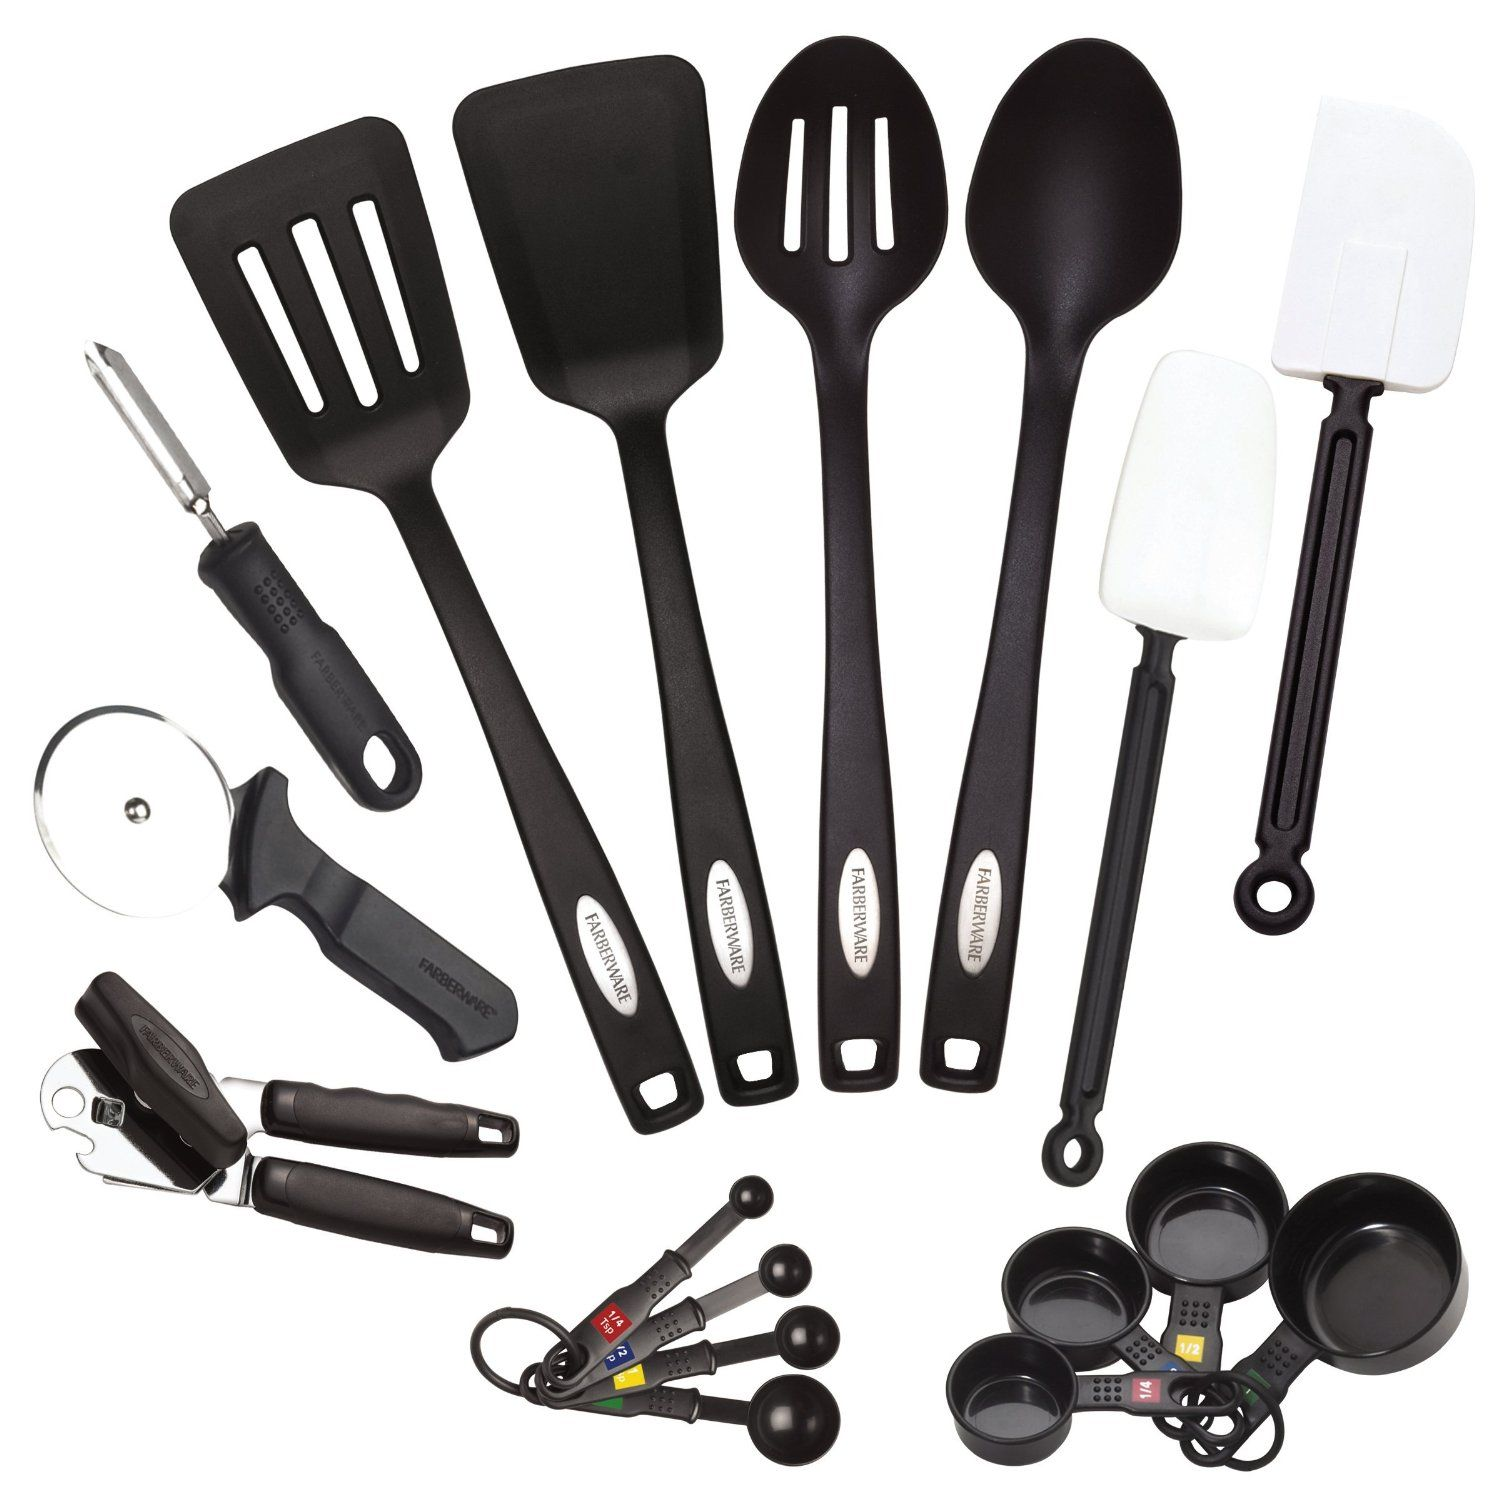 Awesome Amazon.com: Farberware Classic 17 Piece Tool And Gadget Set: Kitchen Tool